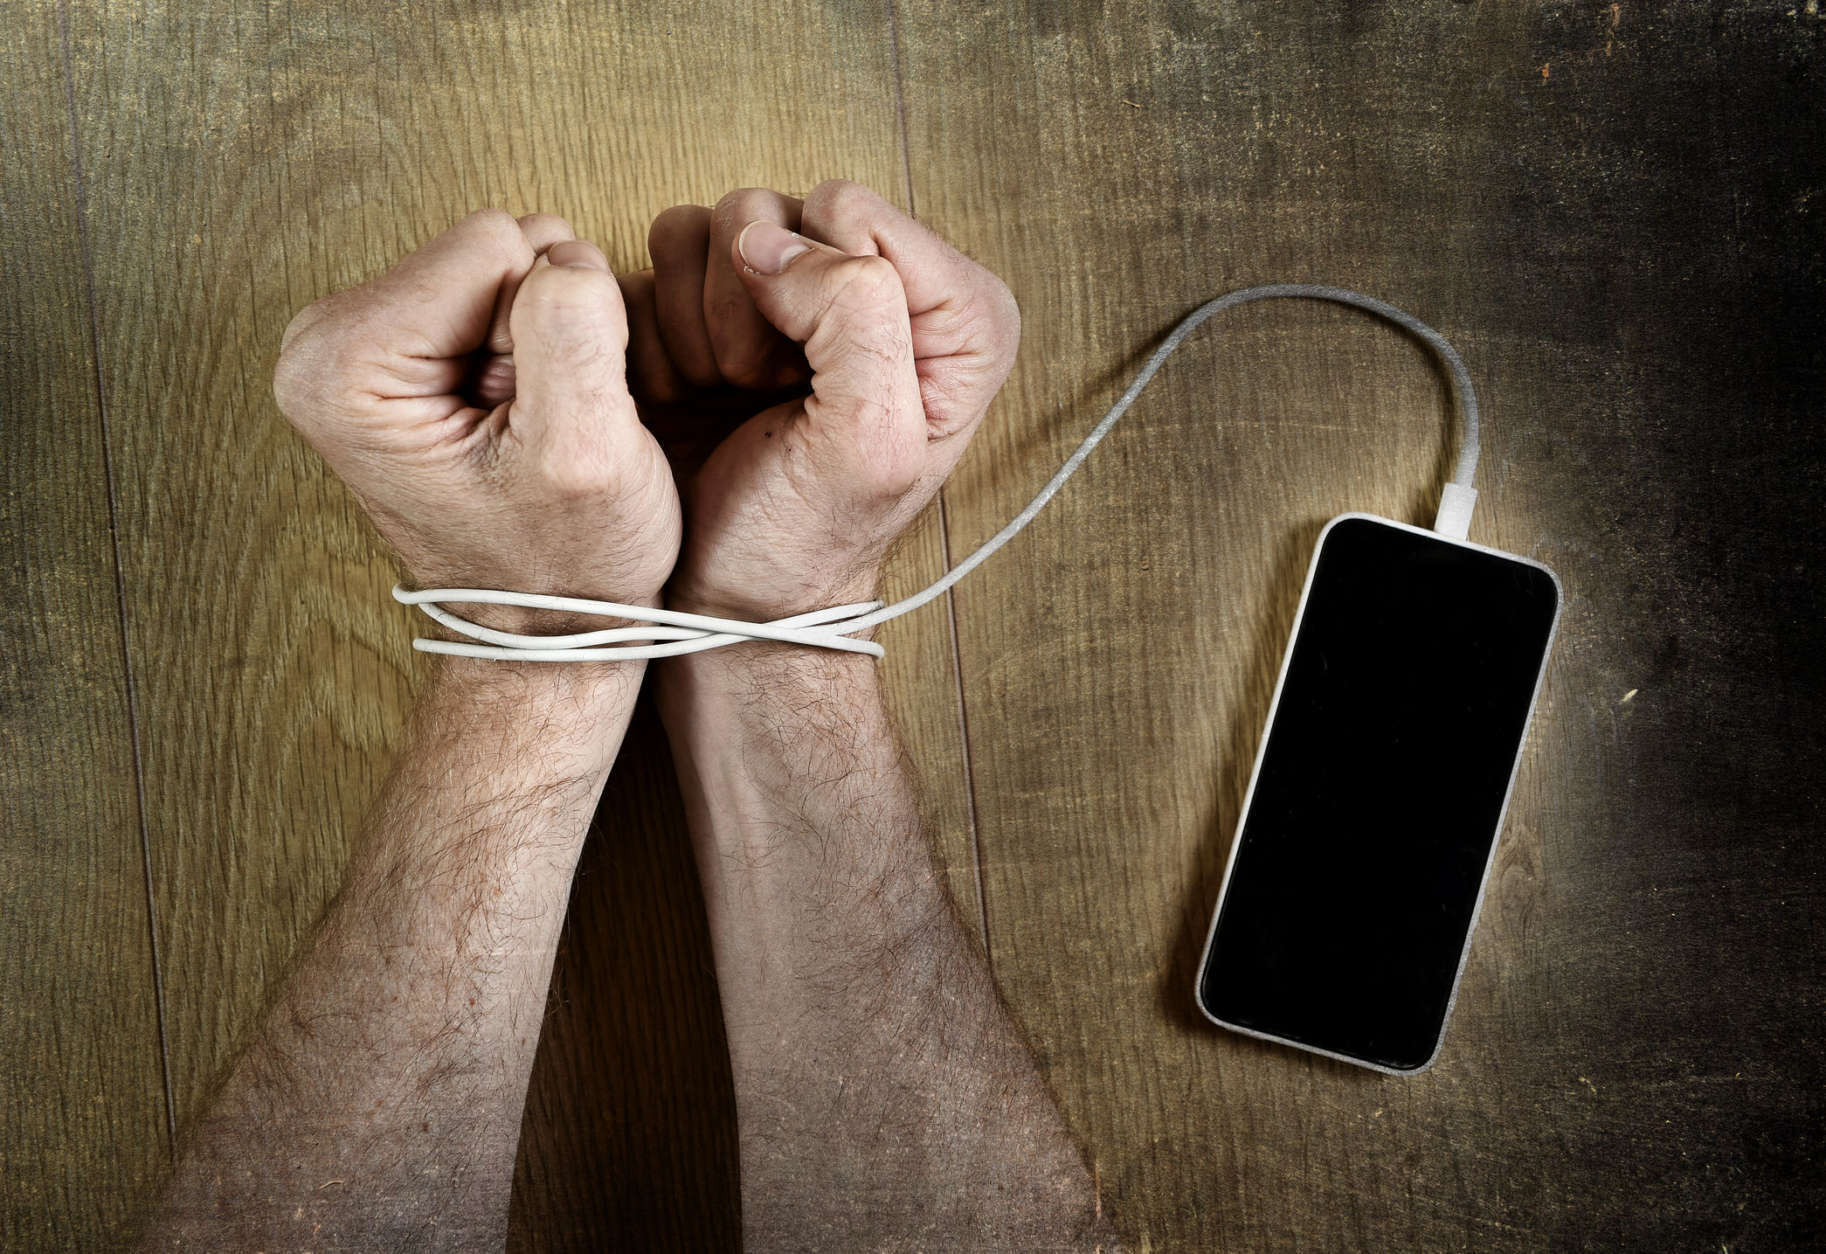 man hands trapped and wrapped on wrists with mobile phone cable as handcuffs in smart phone networking and communication technology addiction concept